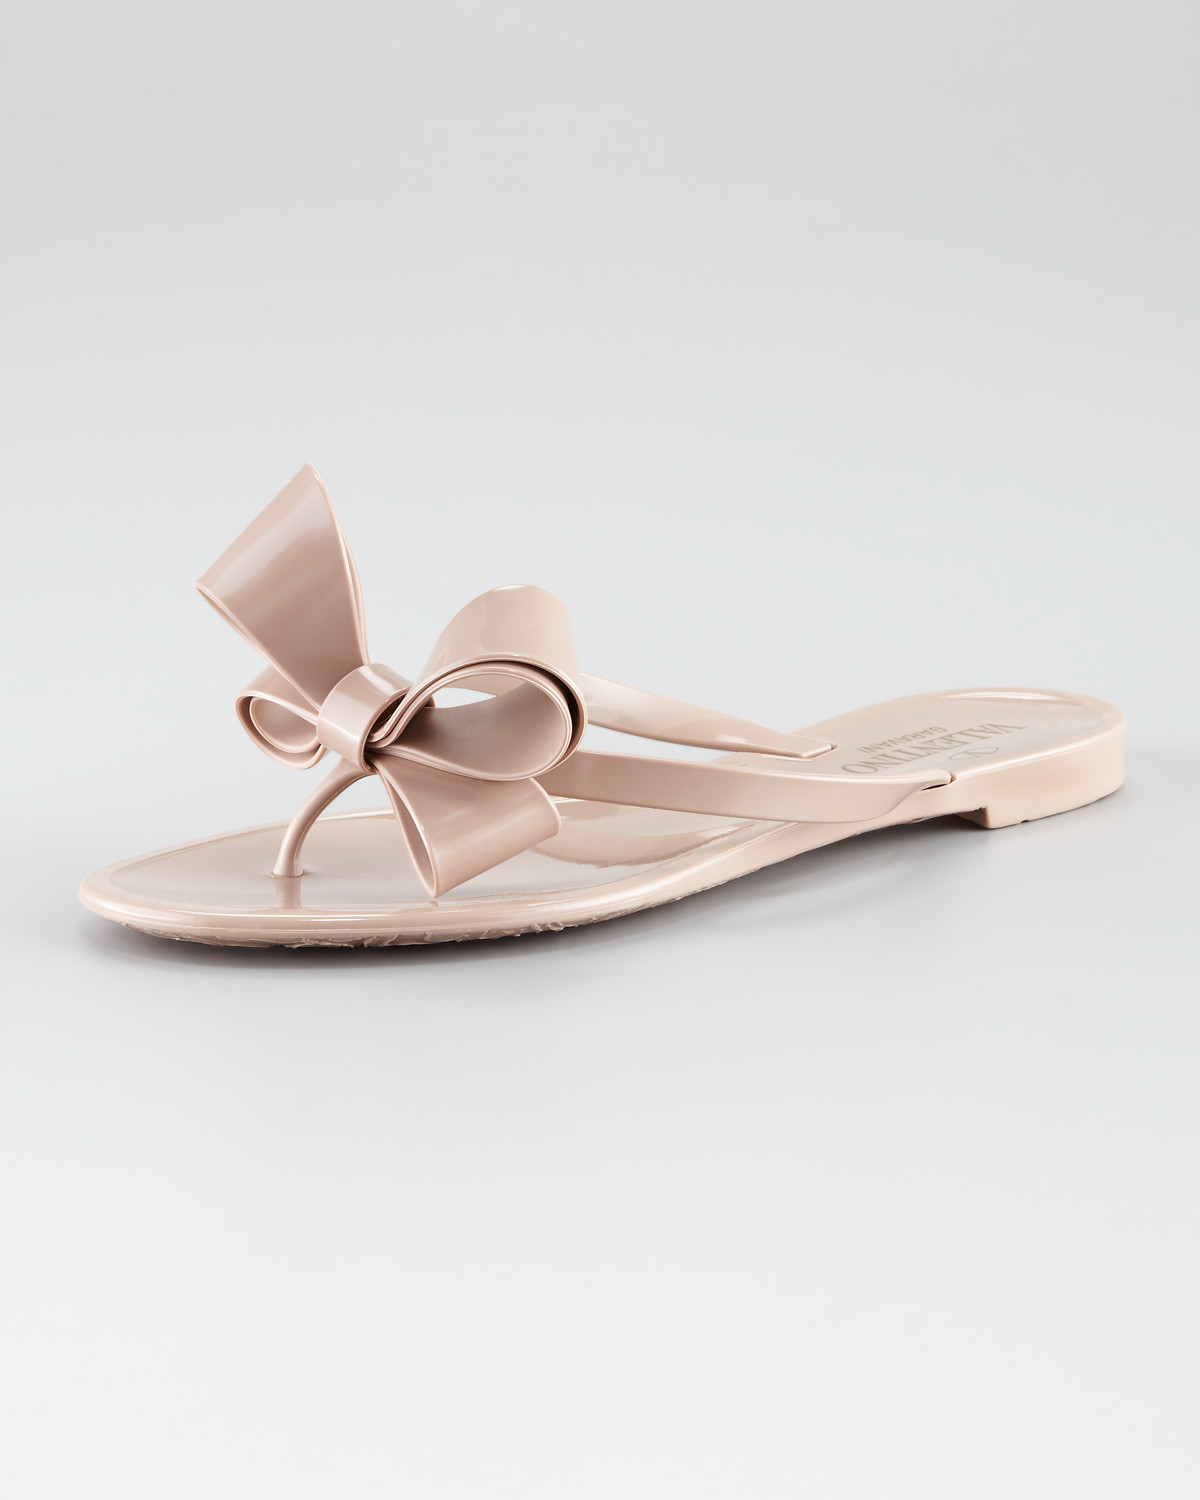 Lyst - Valentino Couture Bow Jelly Thong Sandal in Pink